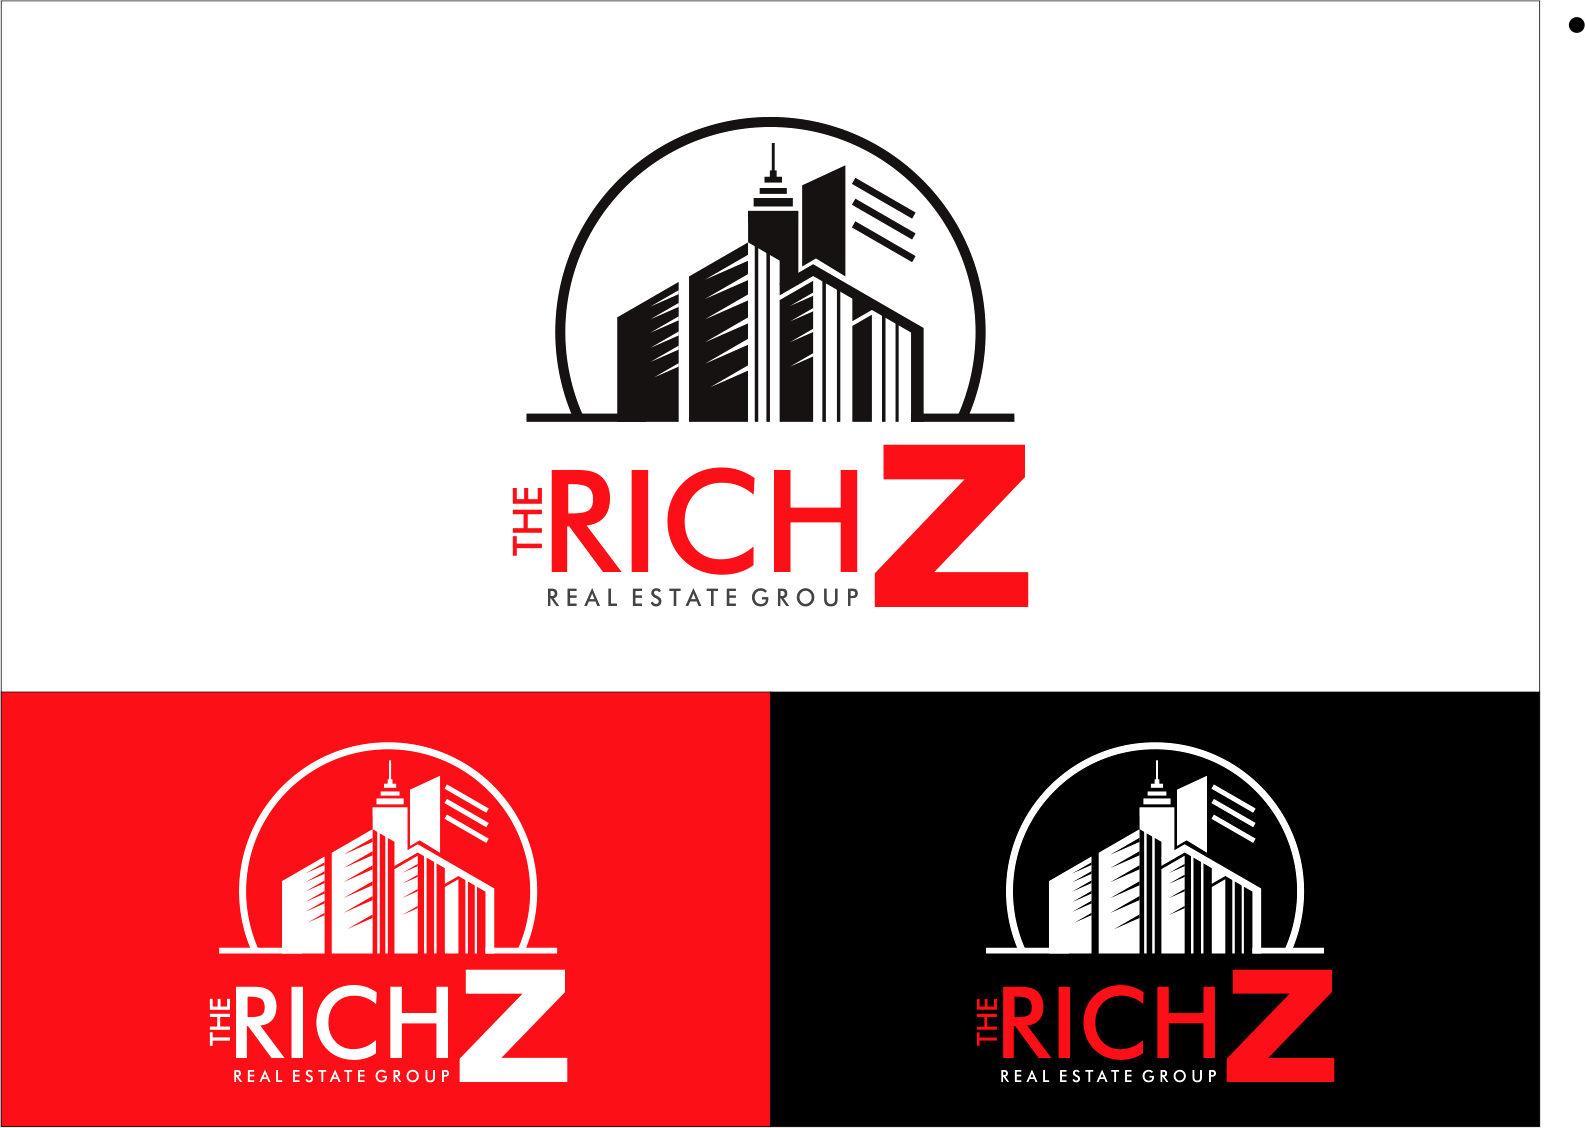 Logo Design by Armada Jamaluddin - Entry No. 398 in the Logo Design Contest The Rich Z. Real Estate Group Logo Design.